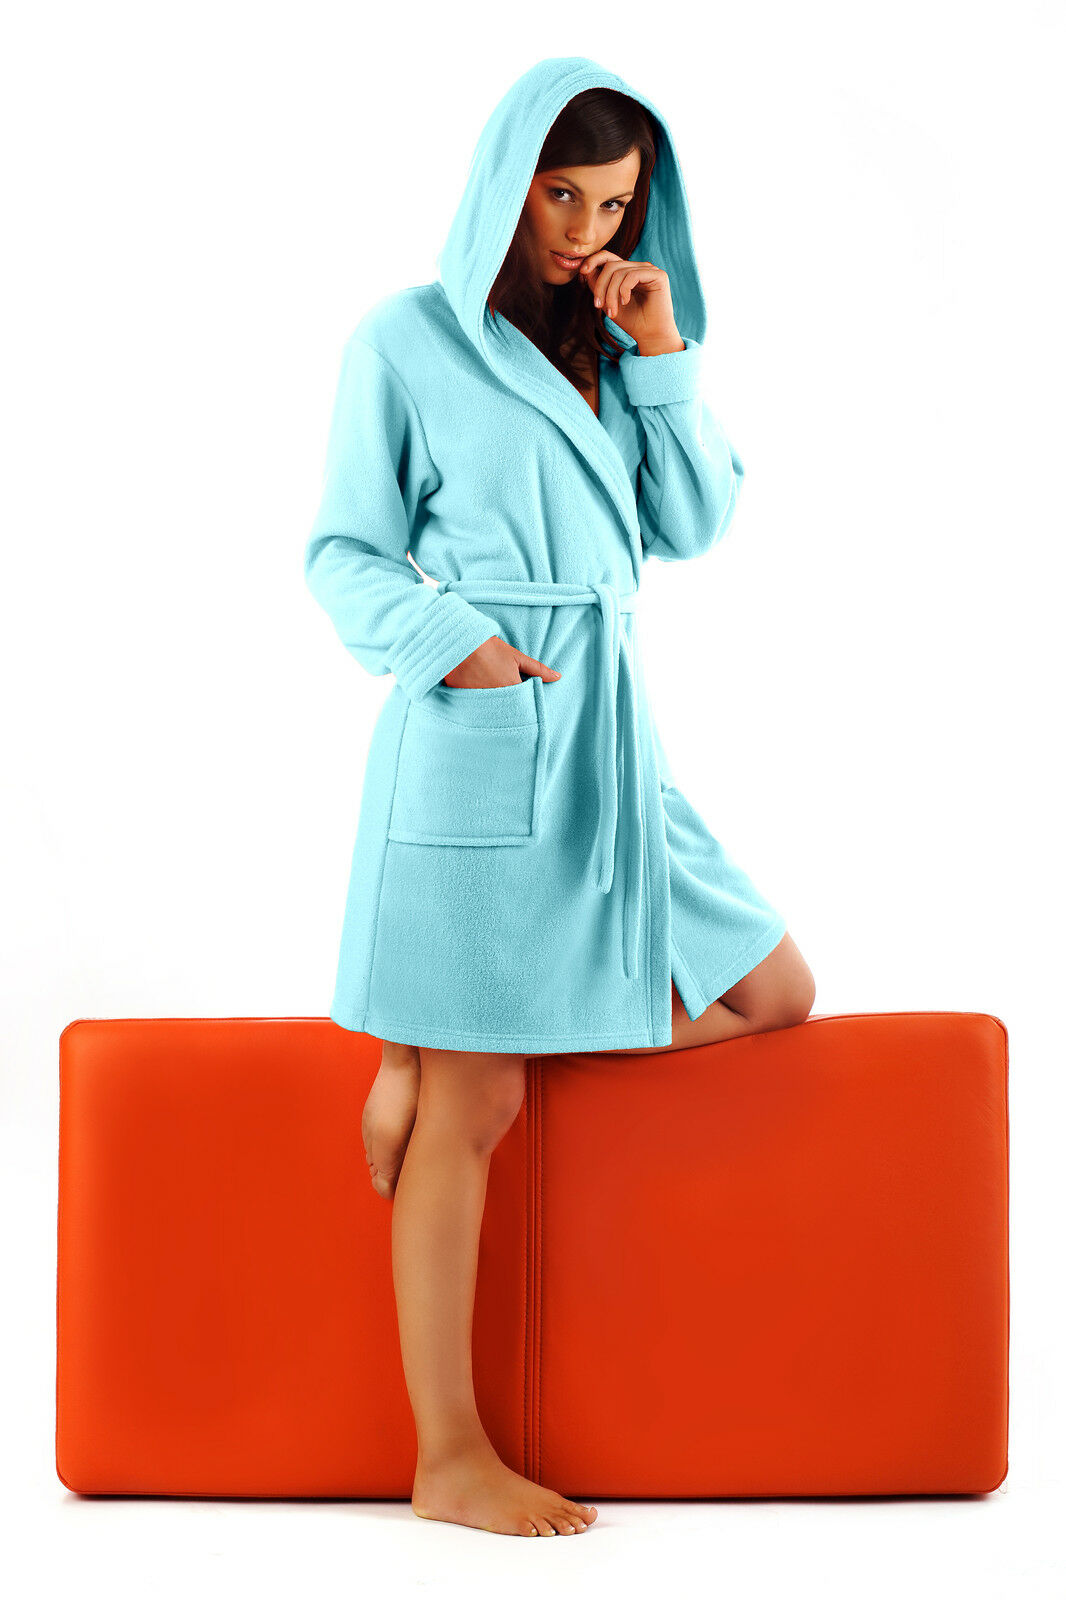 New Hooded Bathrobe Housecoat Dressing Gown for Women UK Robe Size 8 10 12  14 bf4659308